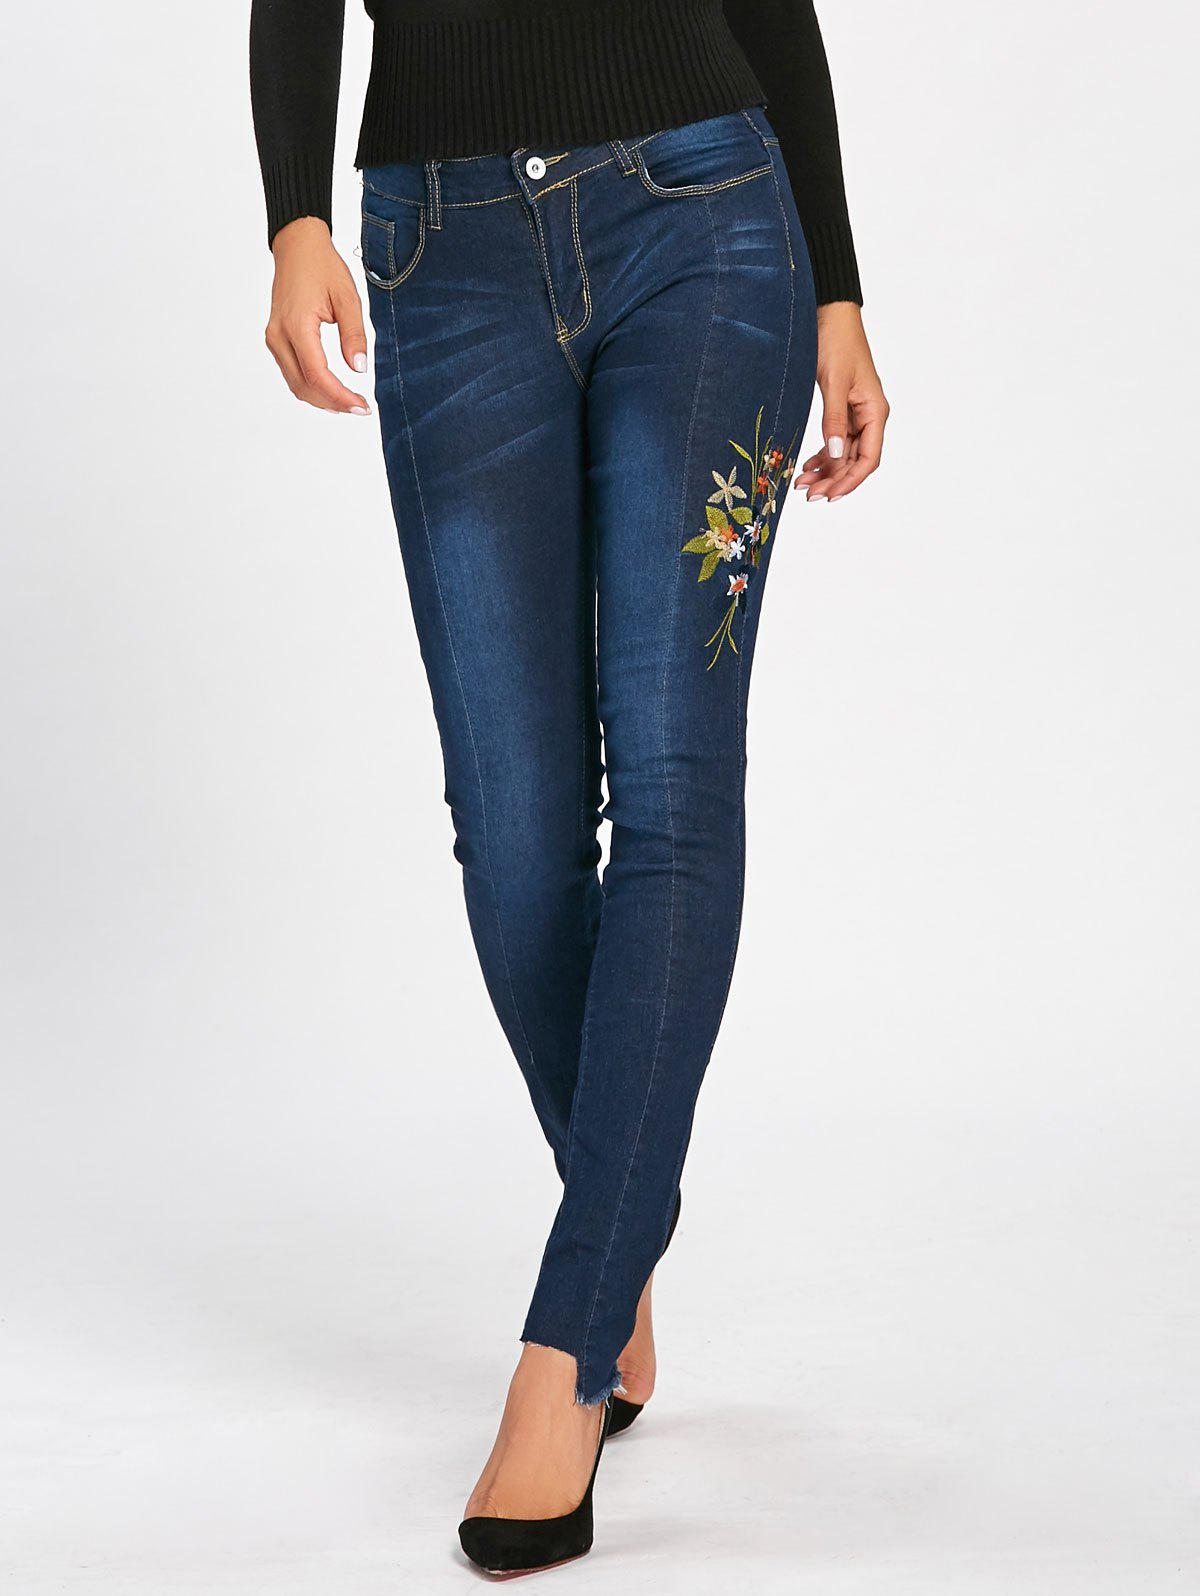 Skinny High Waisted Floral Embroidered Jeans - DEEP BLUE L